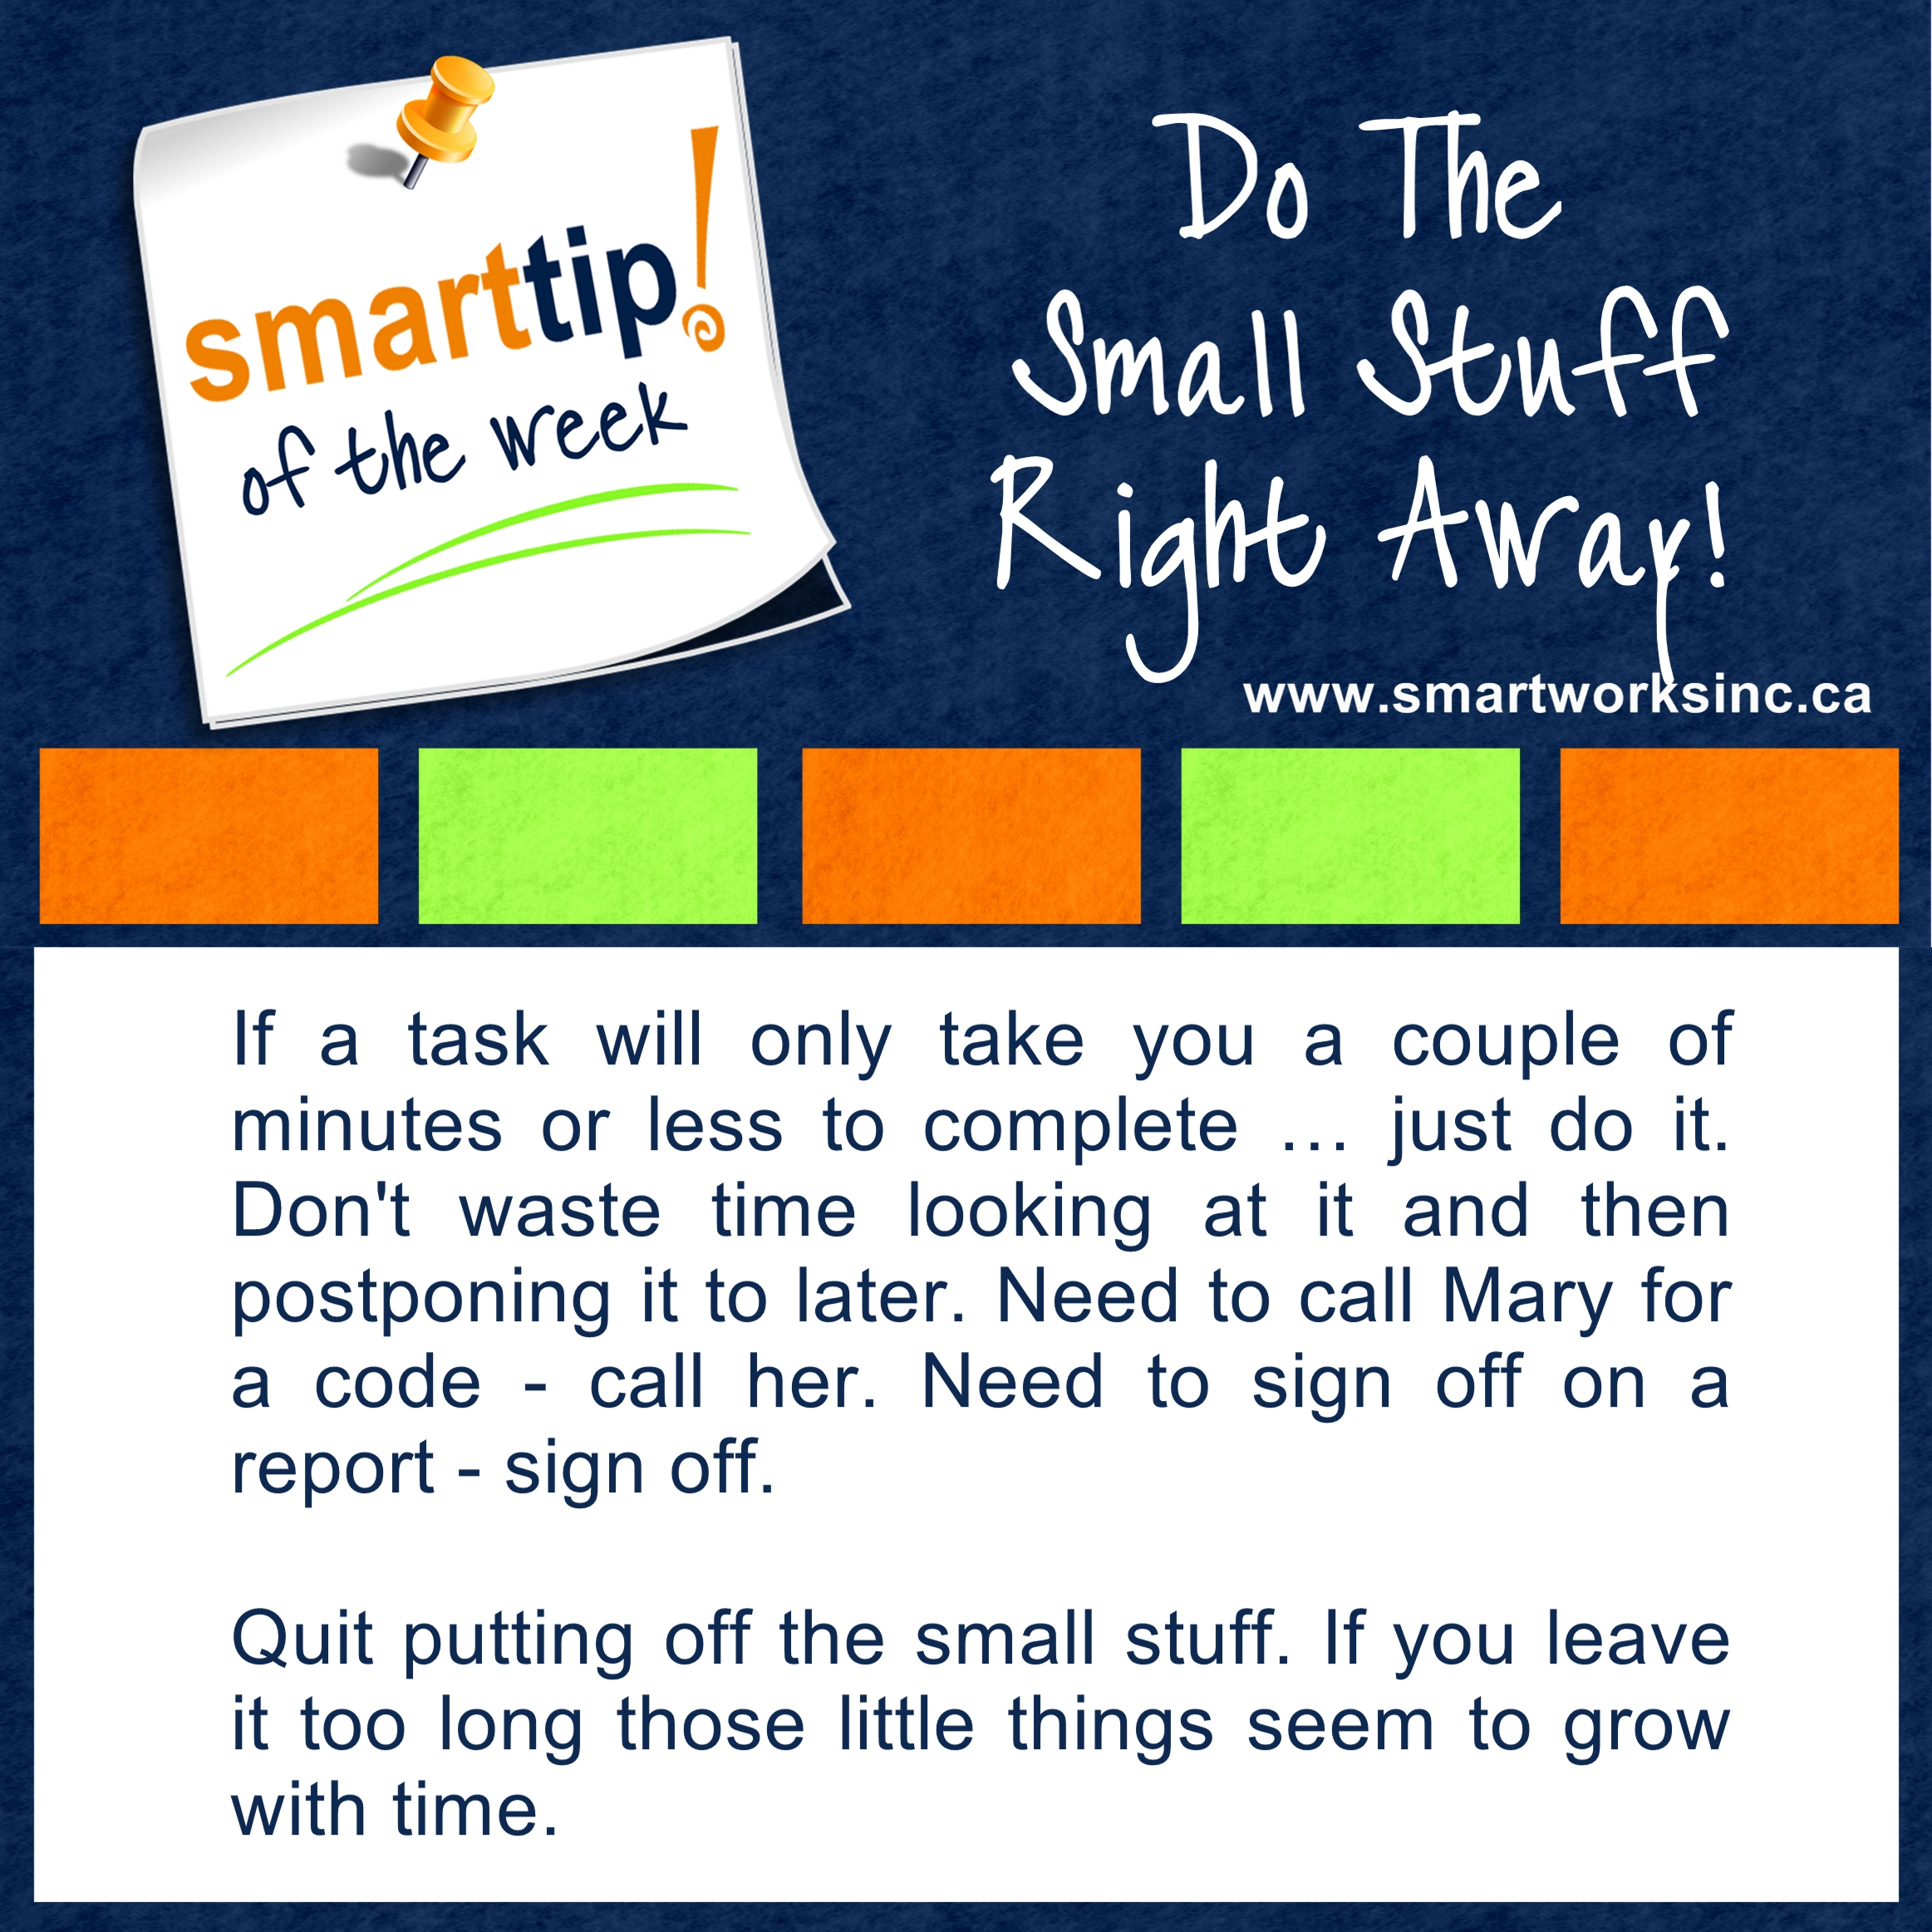 Do The Small Stuff Right Away